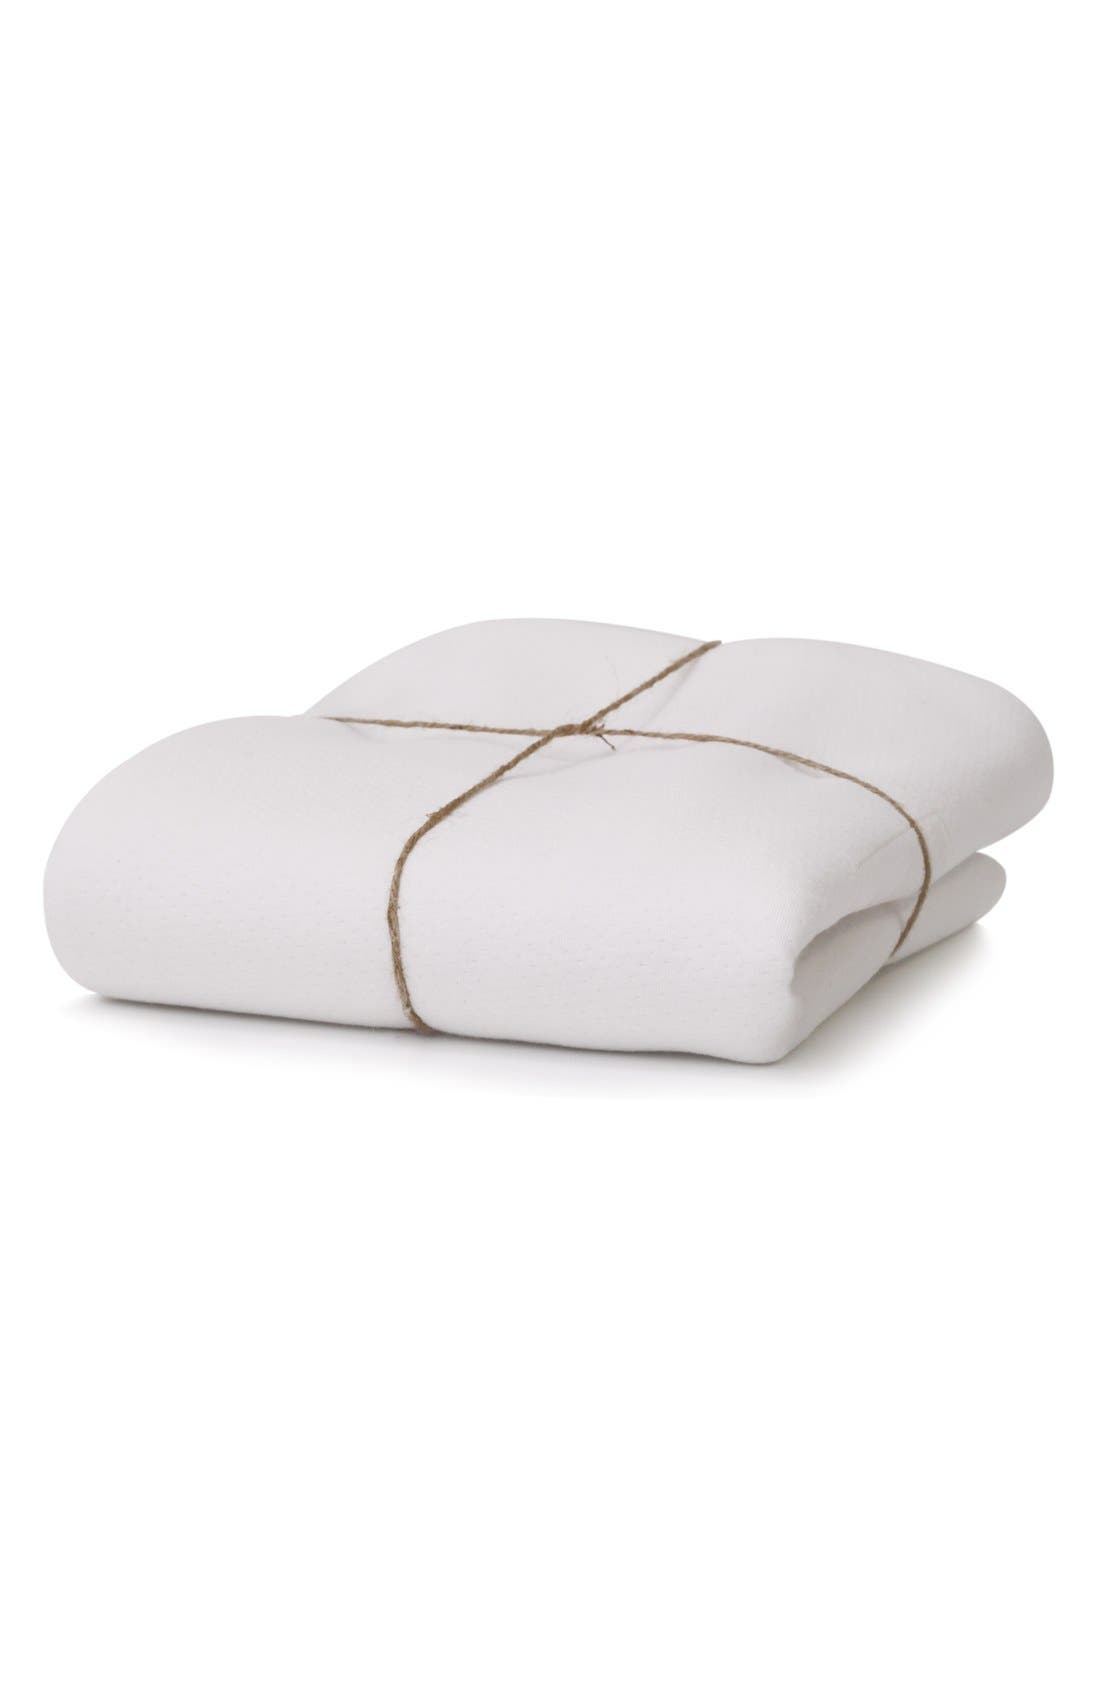 'Pure Core' Nontoxic Crib Mattress & Water Repellent SMART Cover,                             Alternate thumbnail 3, color,                             100